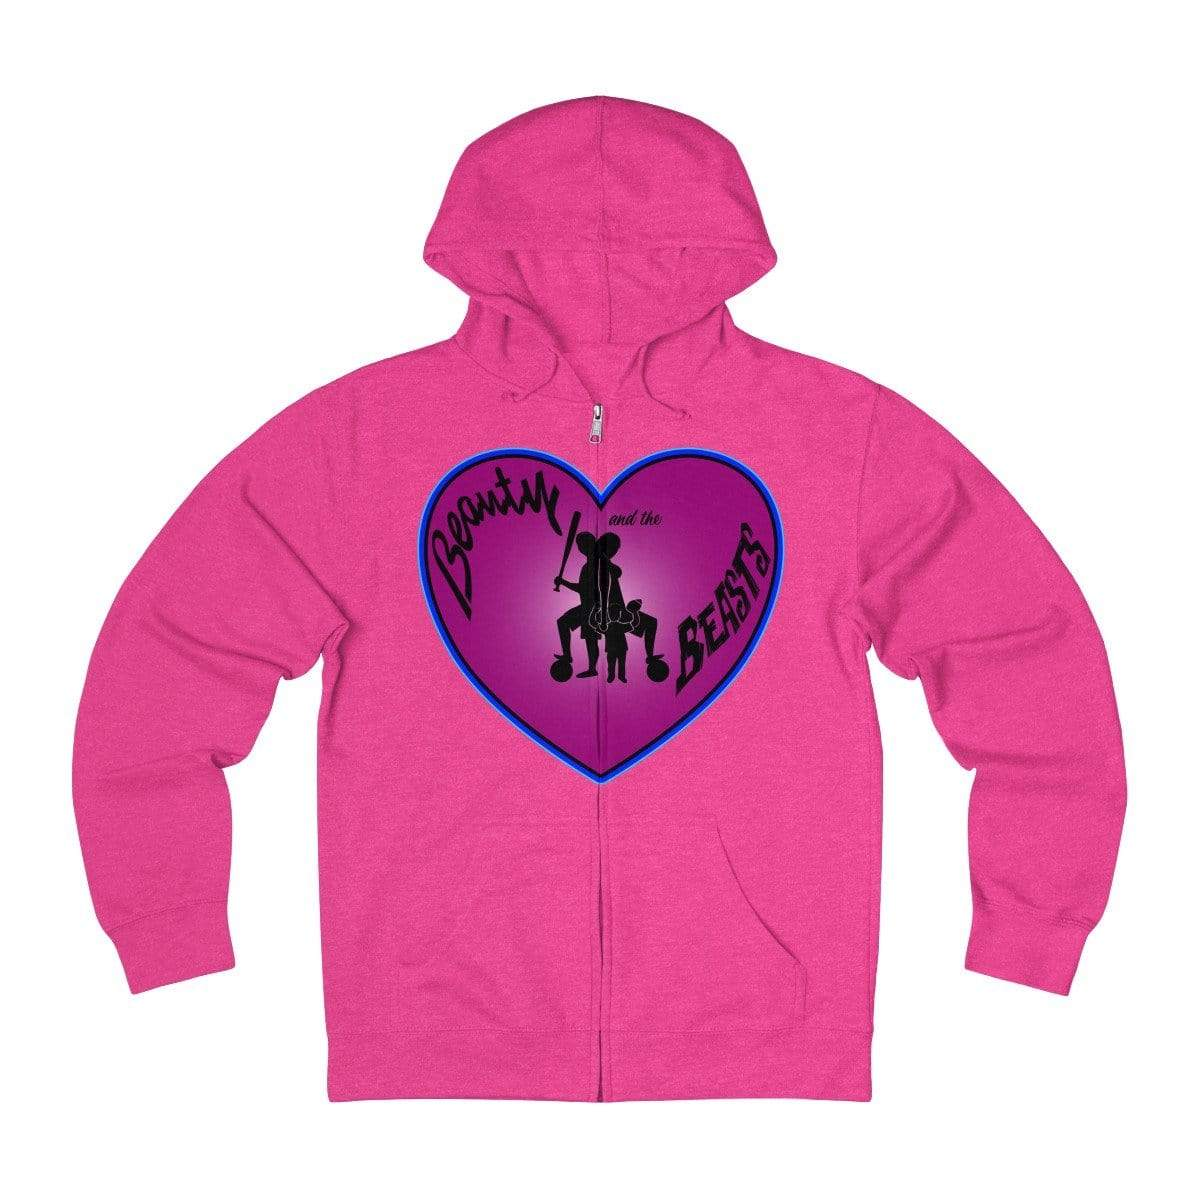 Plumskum Hoodie Heliconia Heather / XS Sports Mother of Twins + French Terry Zip Hoodie